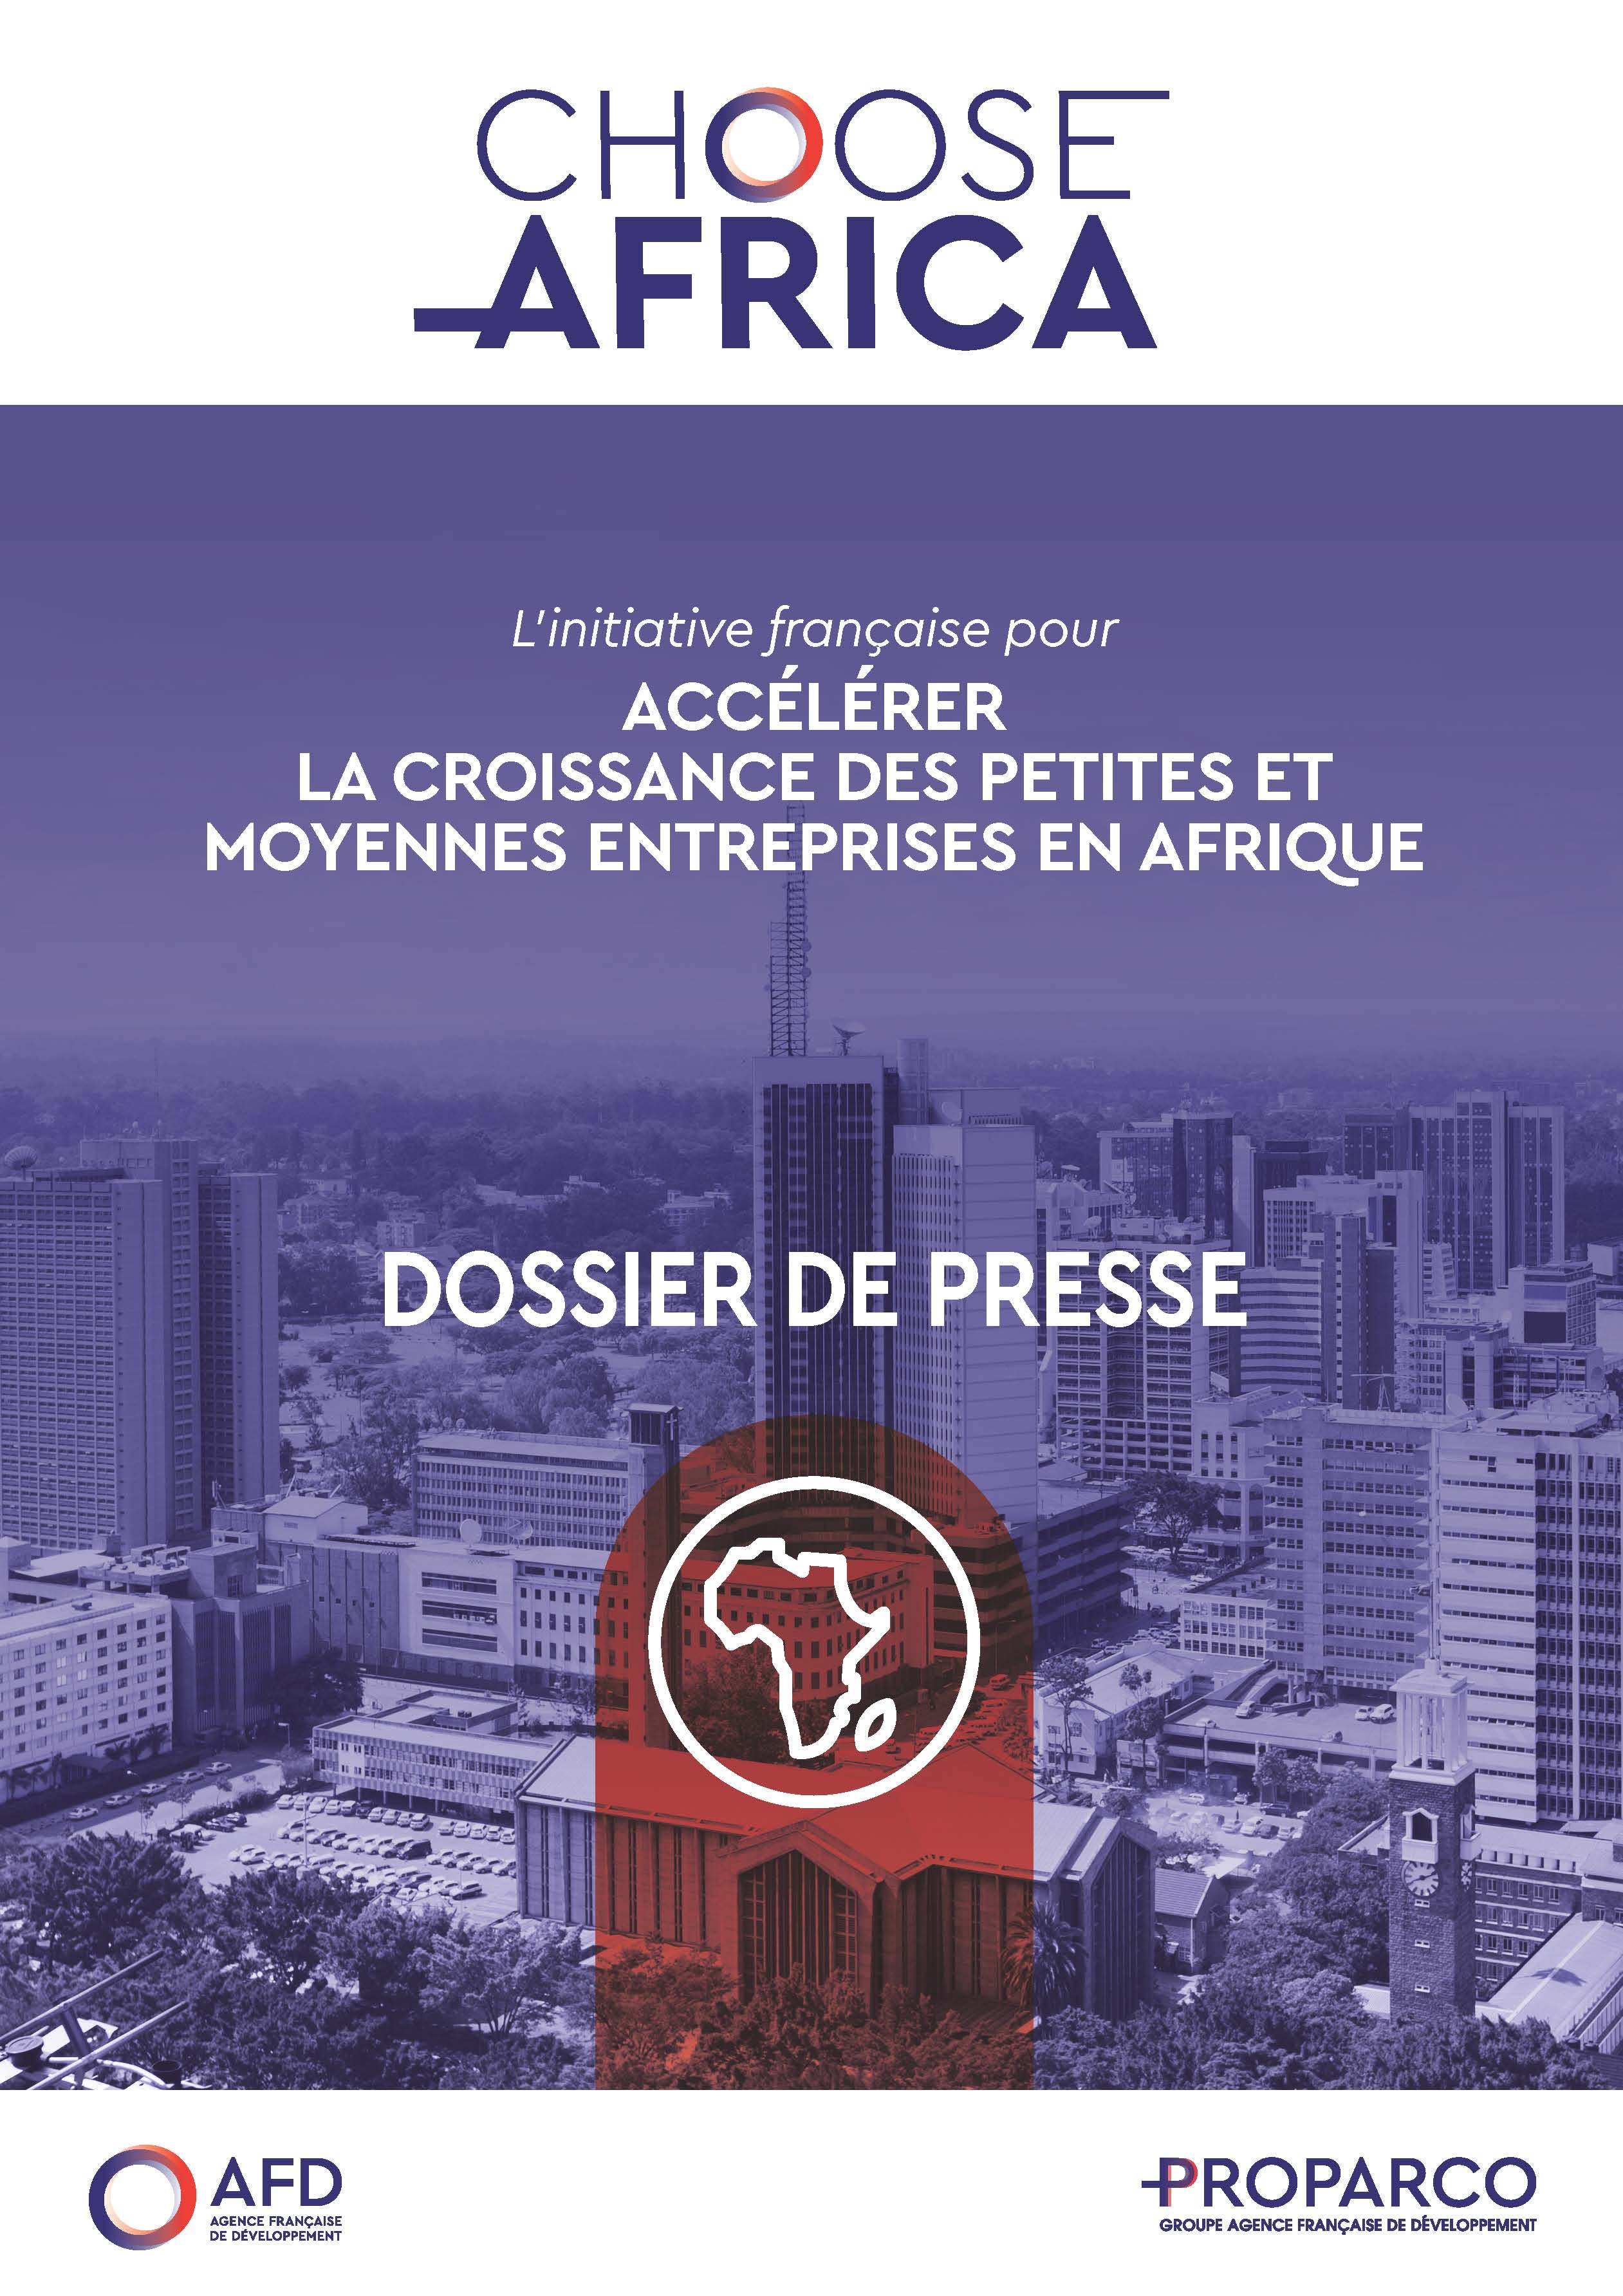 DOSSIER DE PRESSE-CHOOSE AFRICA fr